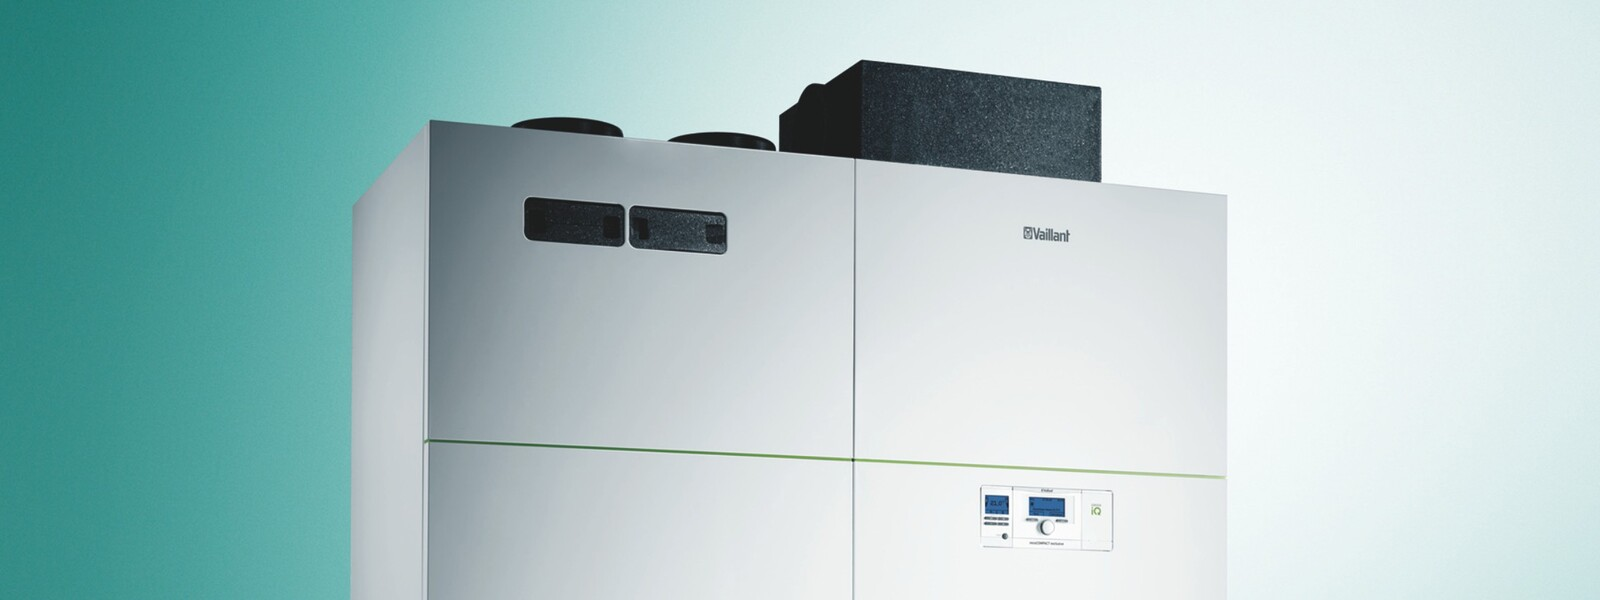 https://www.vaillant-group.com/newsroom/pressemitteilungen/2018/shk-2018/recocompact/recocompact-1166427-format-24-9@1600@desktop.jpg